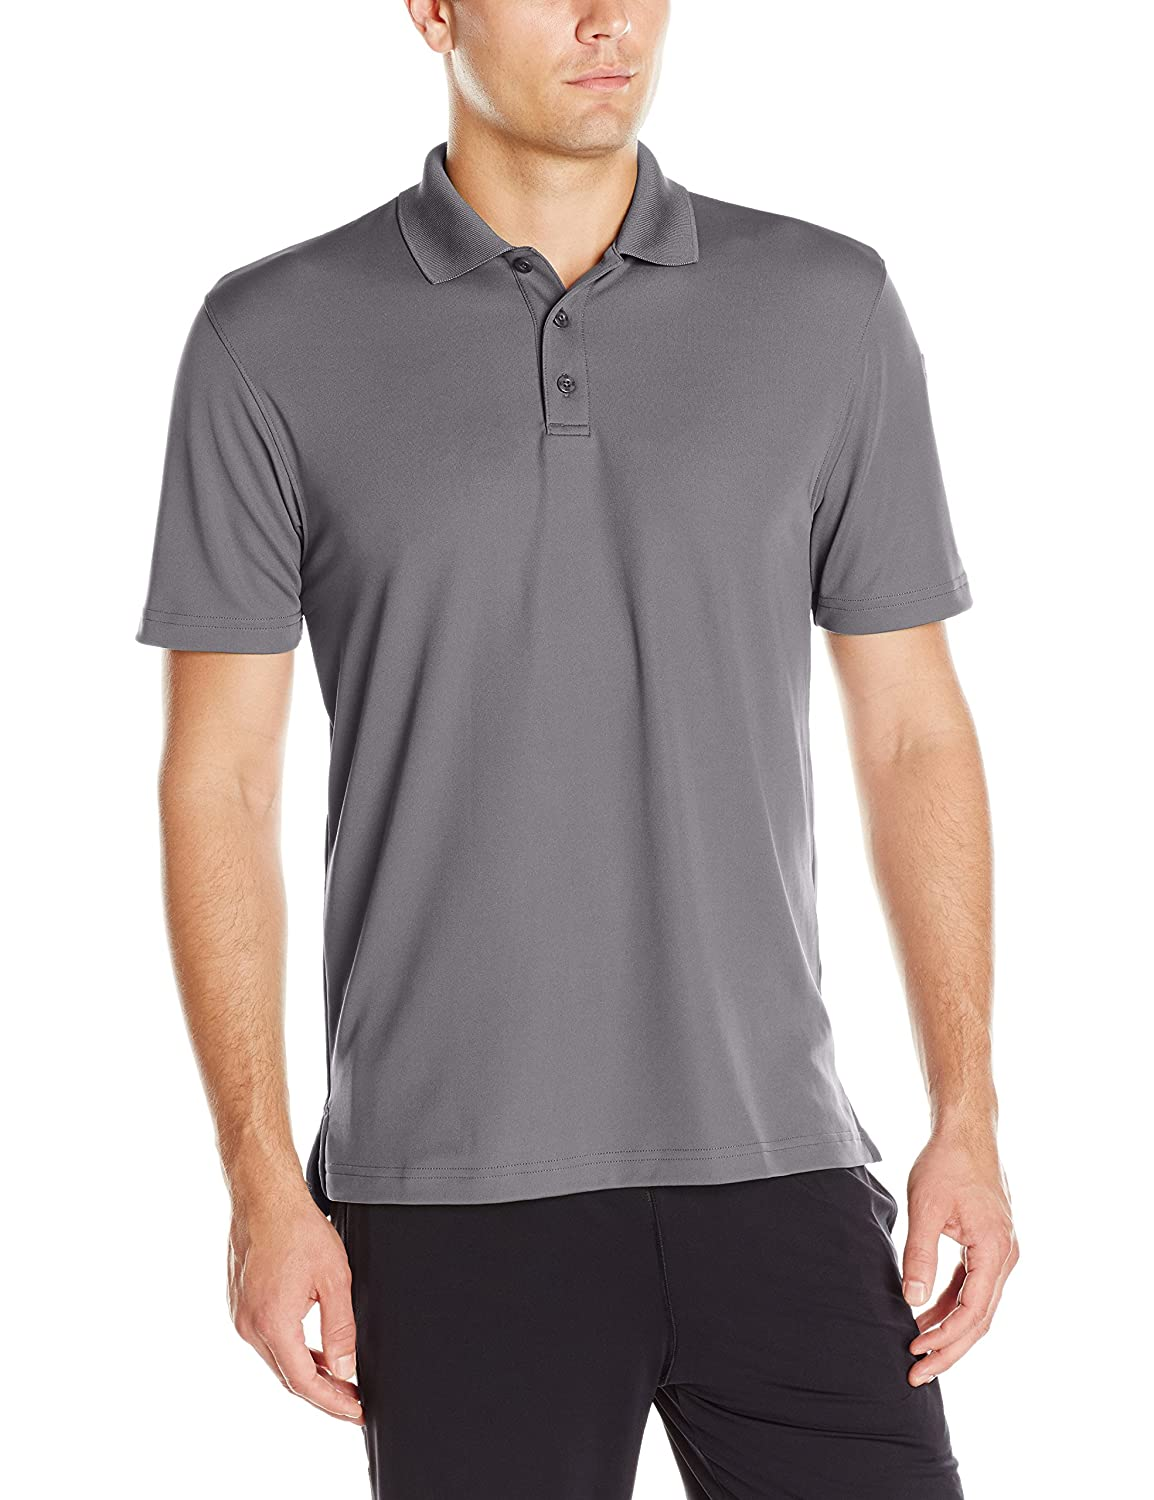 Under Armour Men's Tactical Performance Polo Under Armour Apparel 1279759